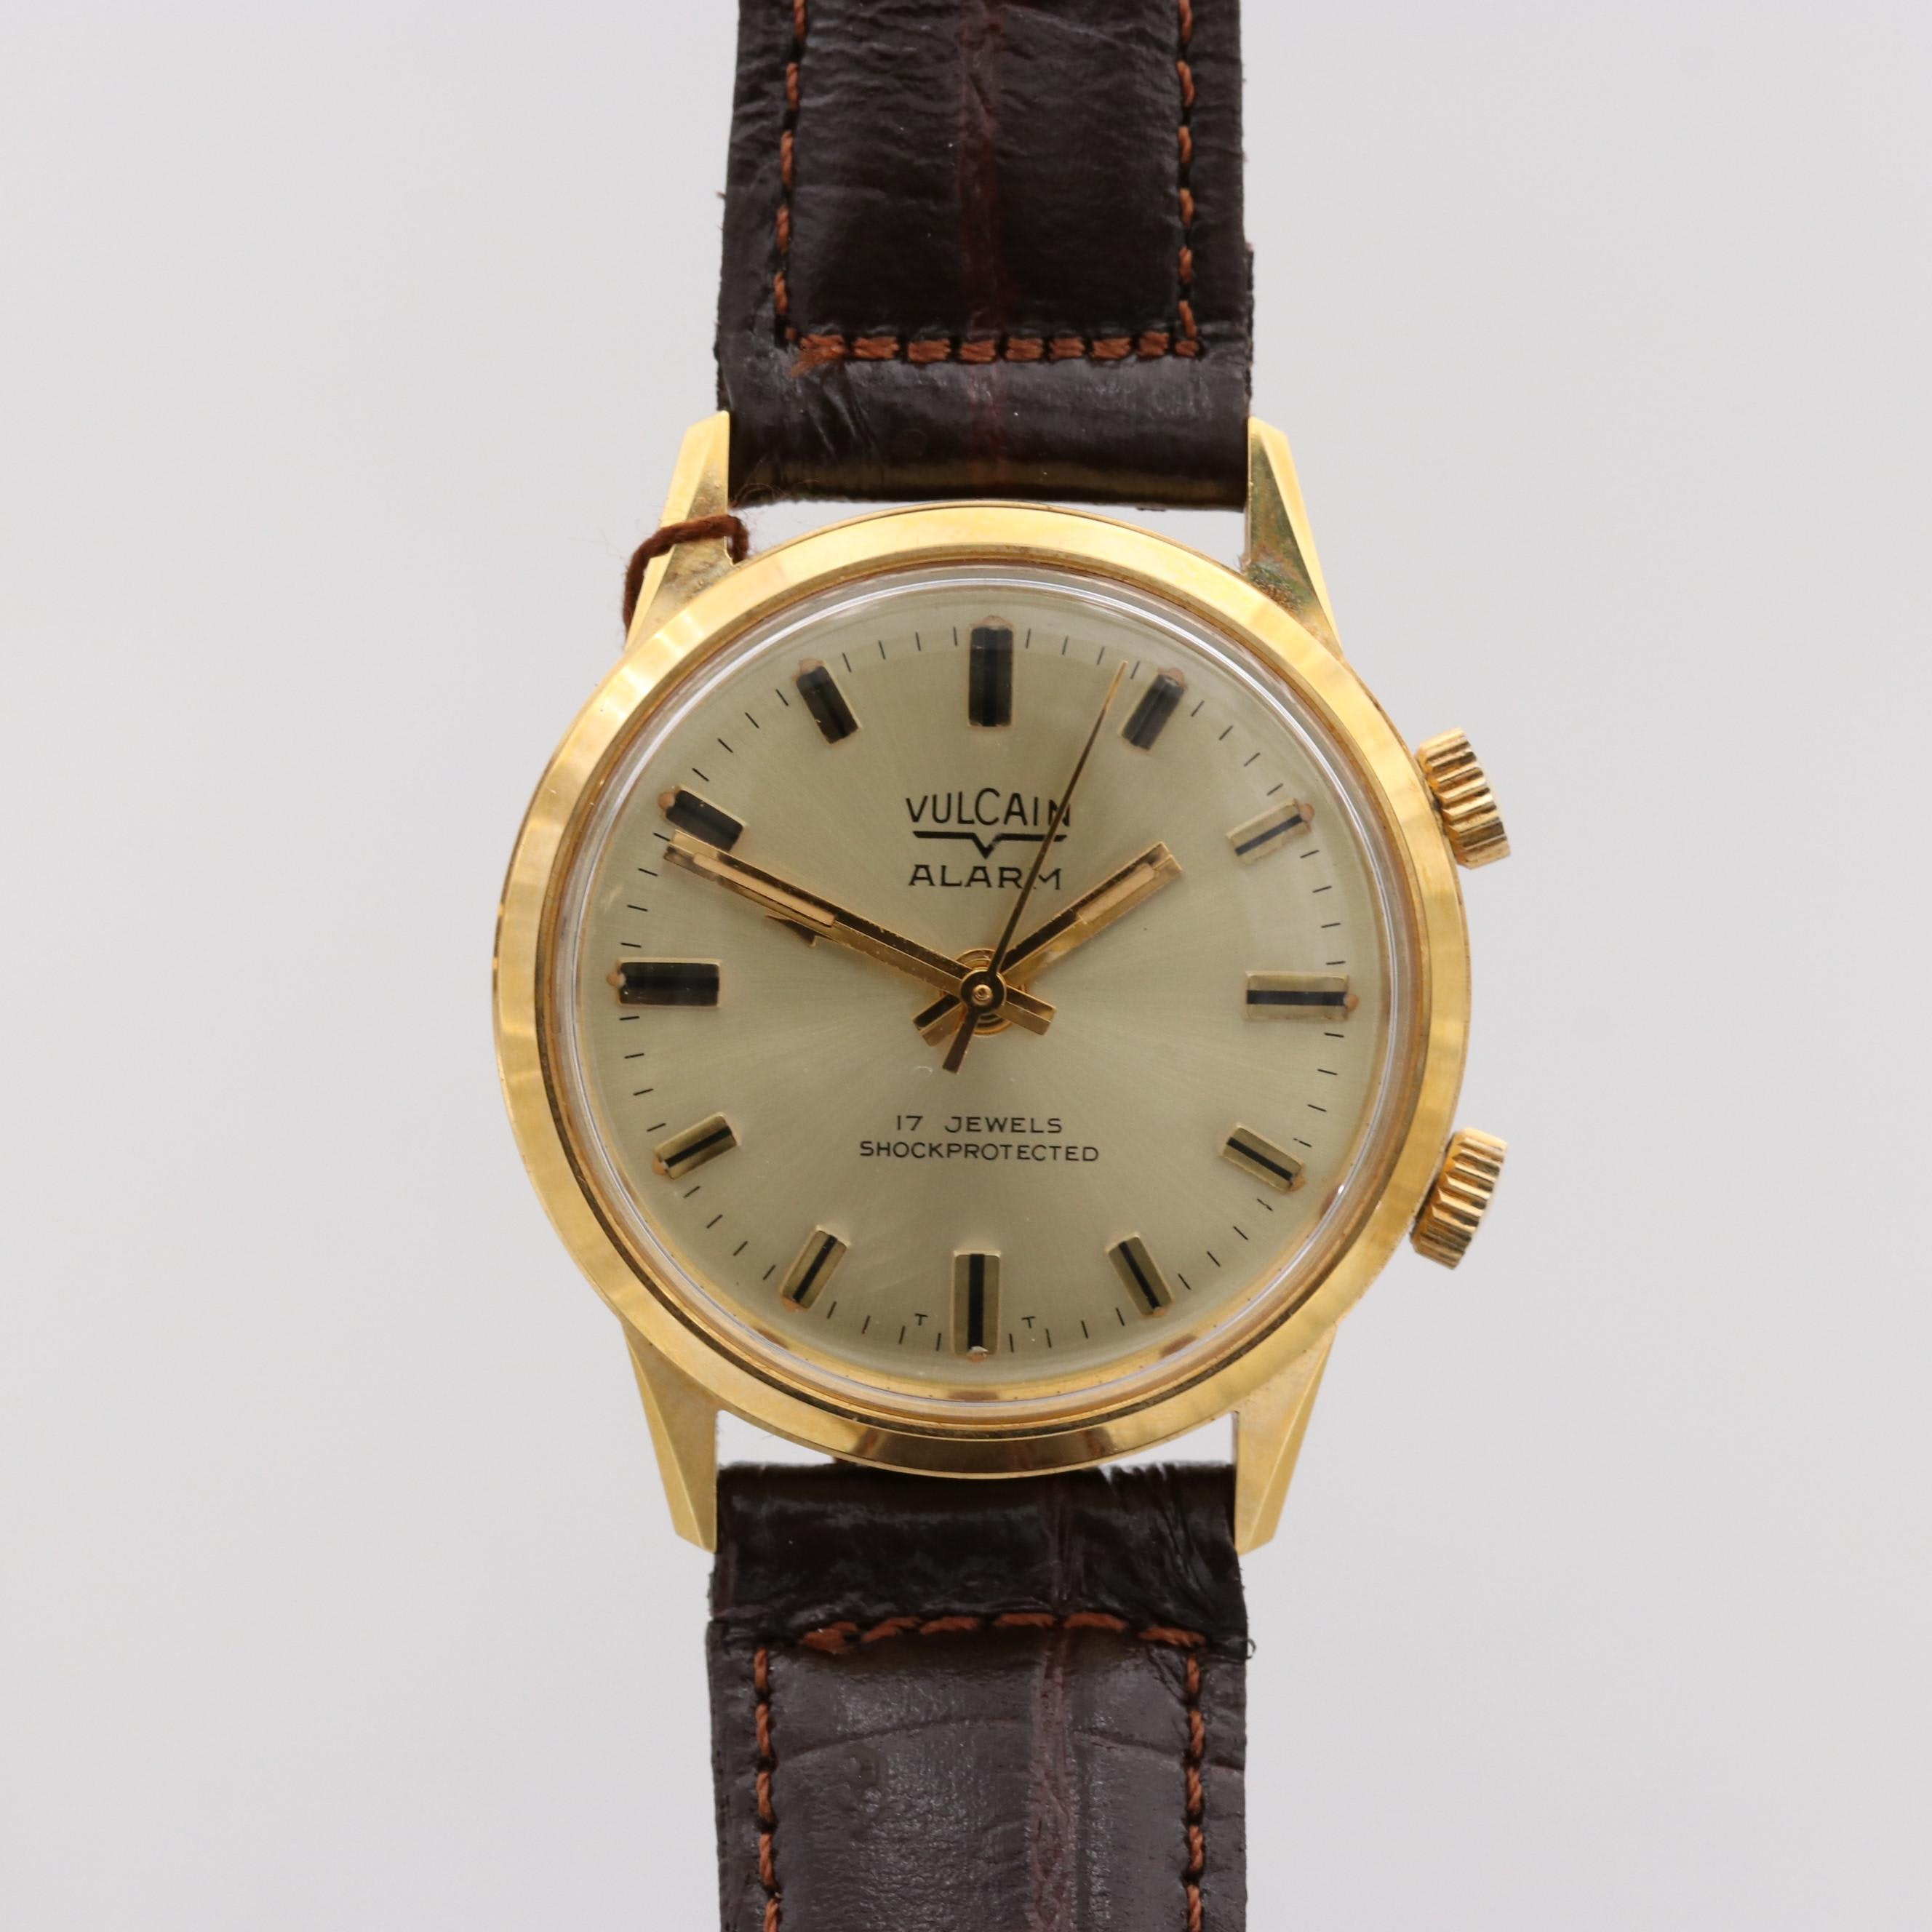 Vintage Vulcain Alarm Gold Tone Stem Wind Wristwatch